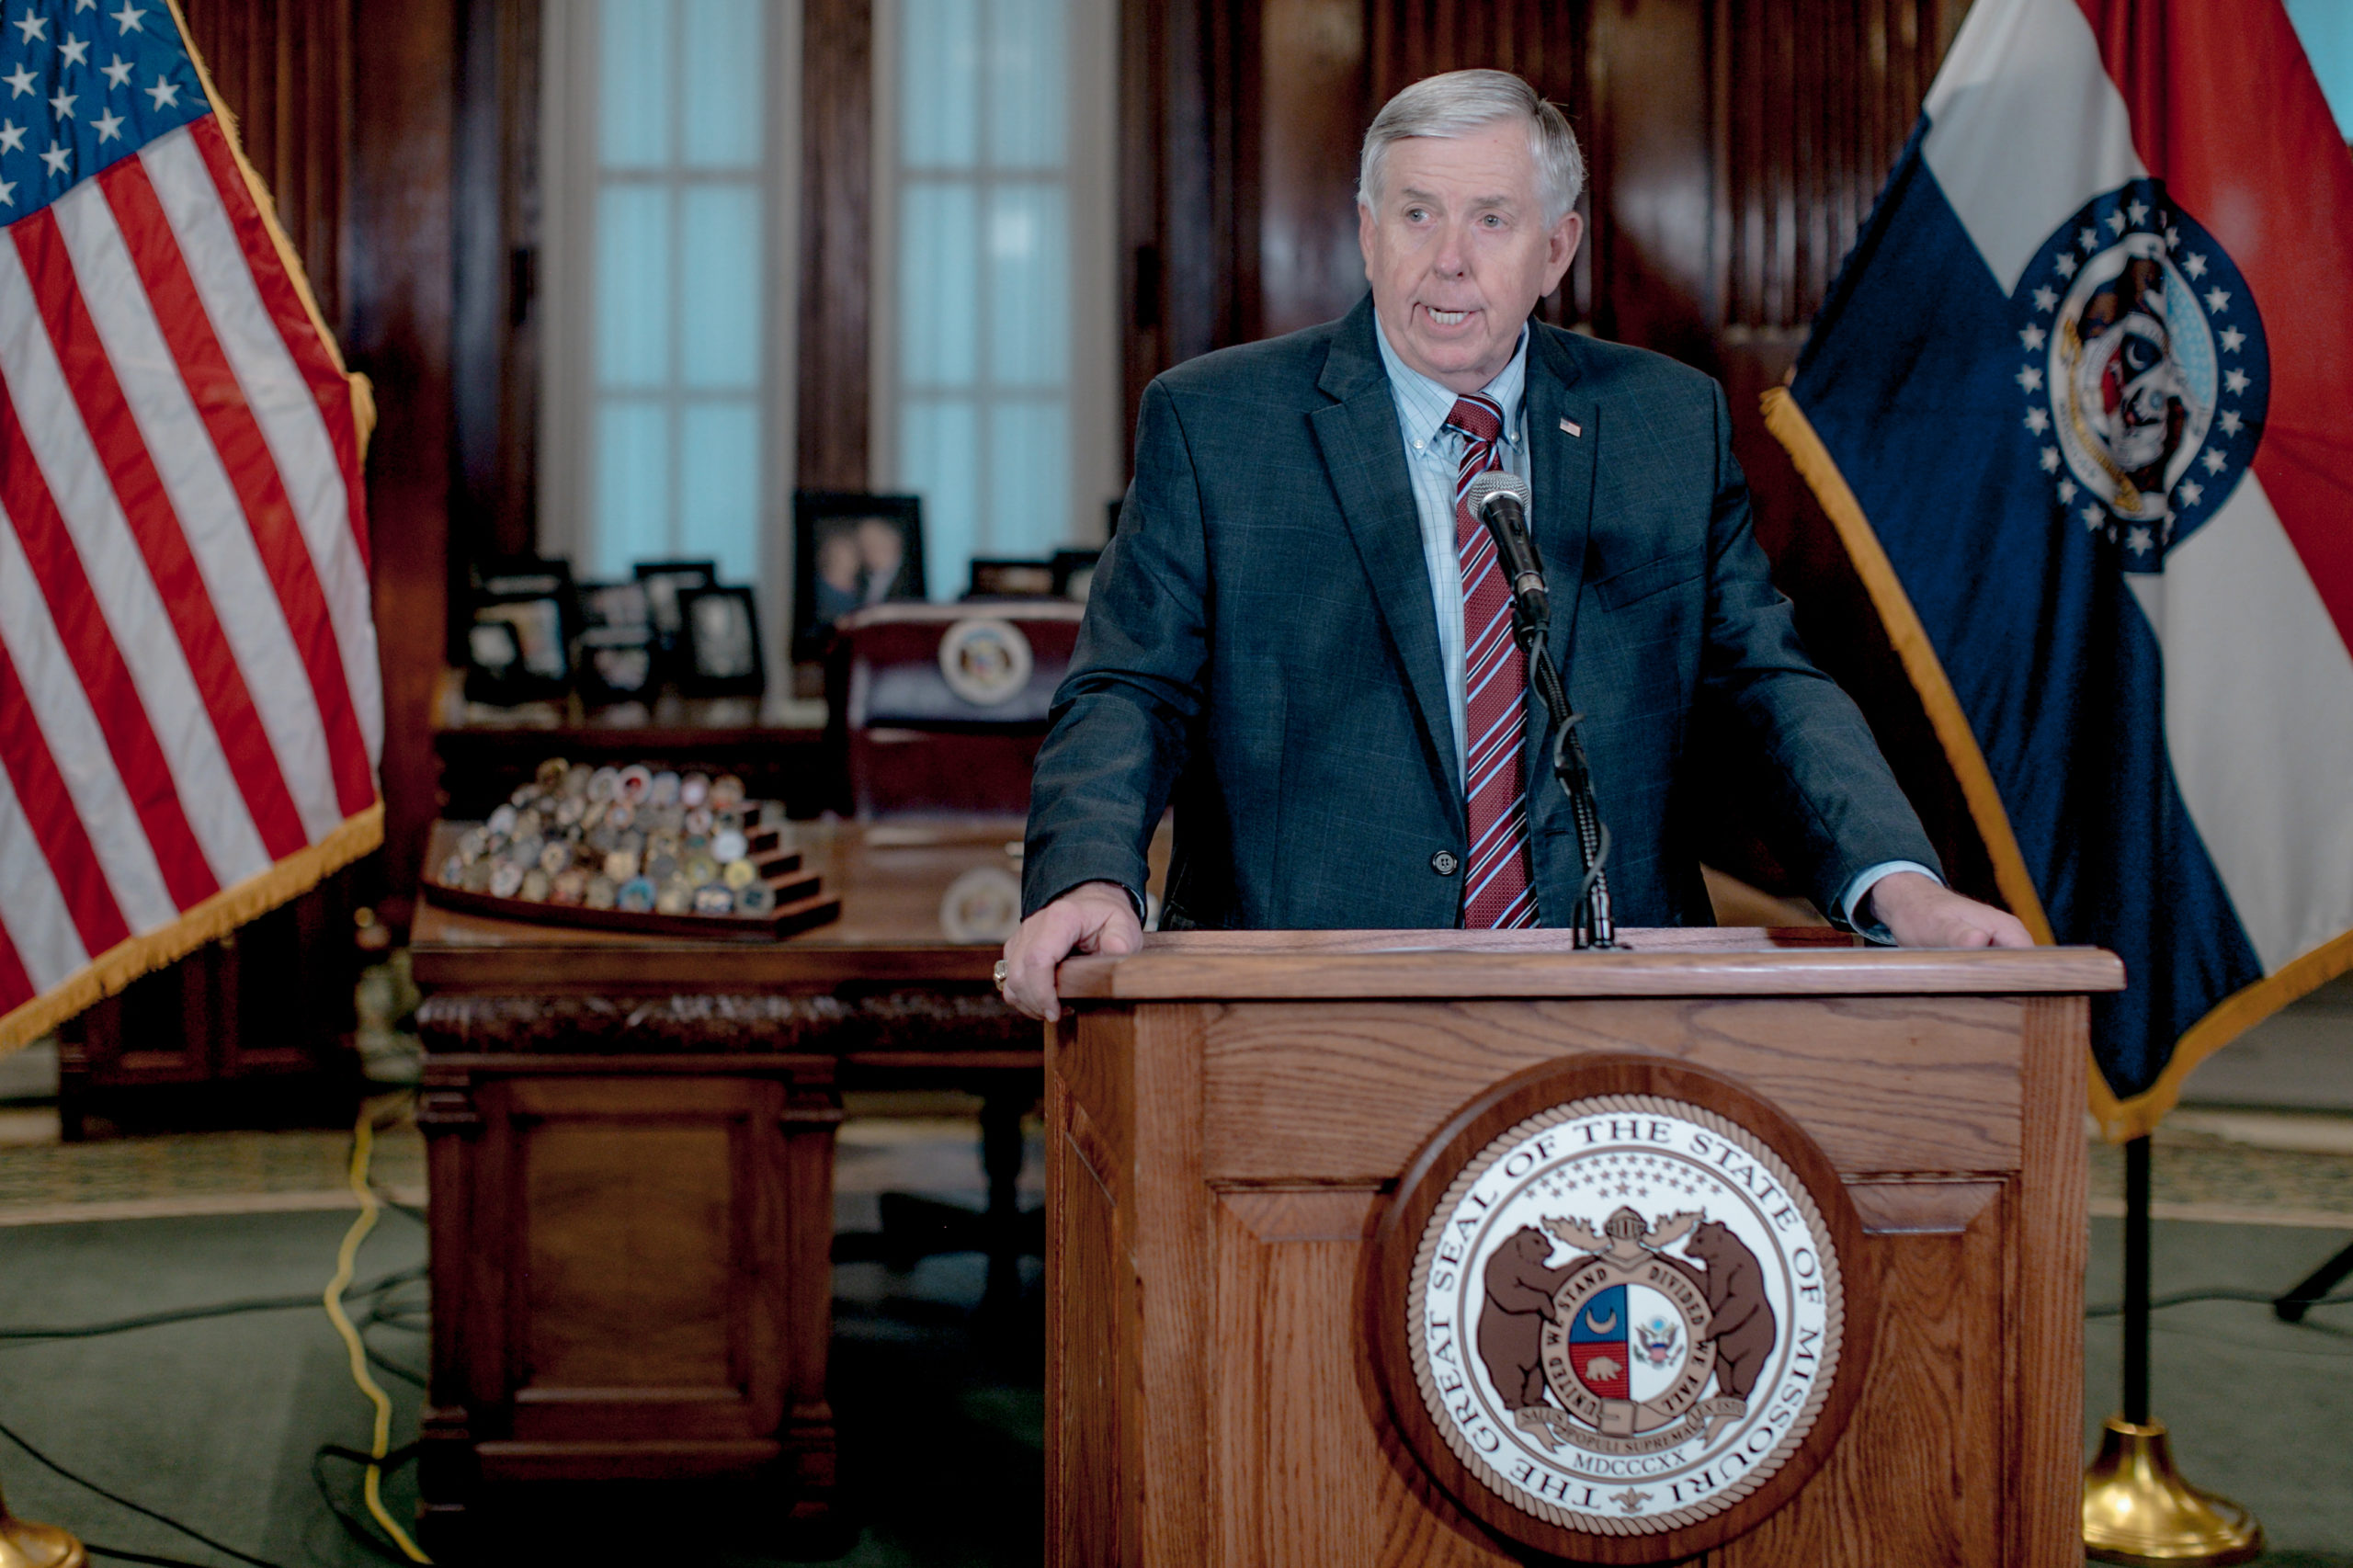 Gov. Mike Parson speaks during a press conference in 2019 in Jefferson City, Missouri. (Jacob Moscovitch/Getty Images)